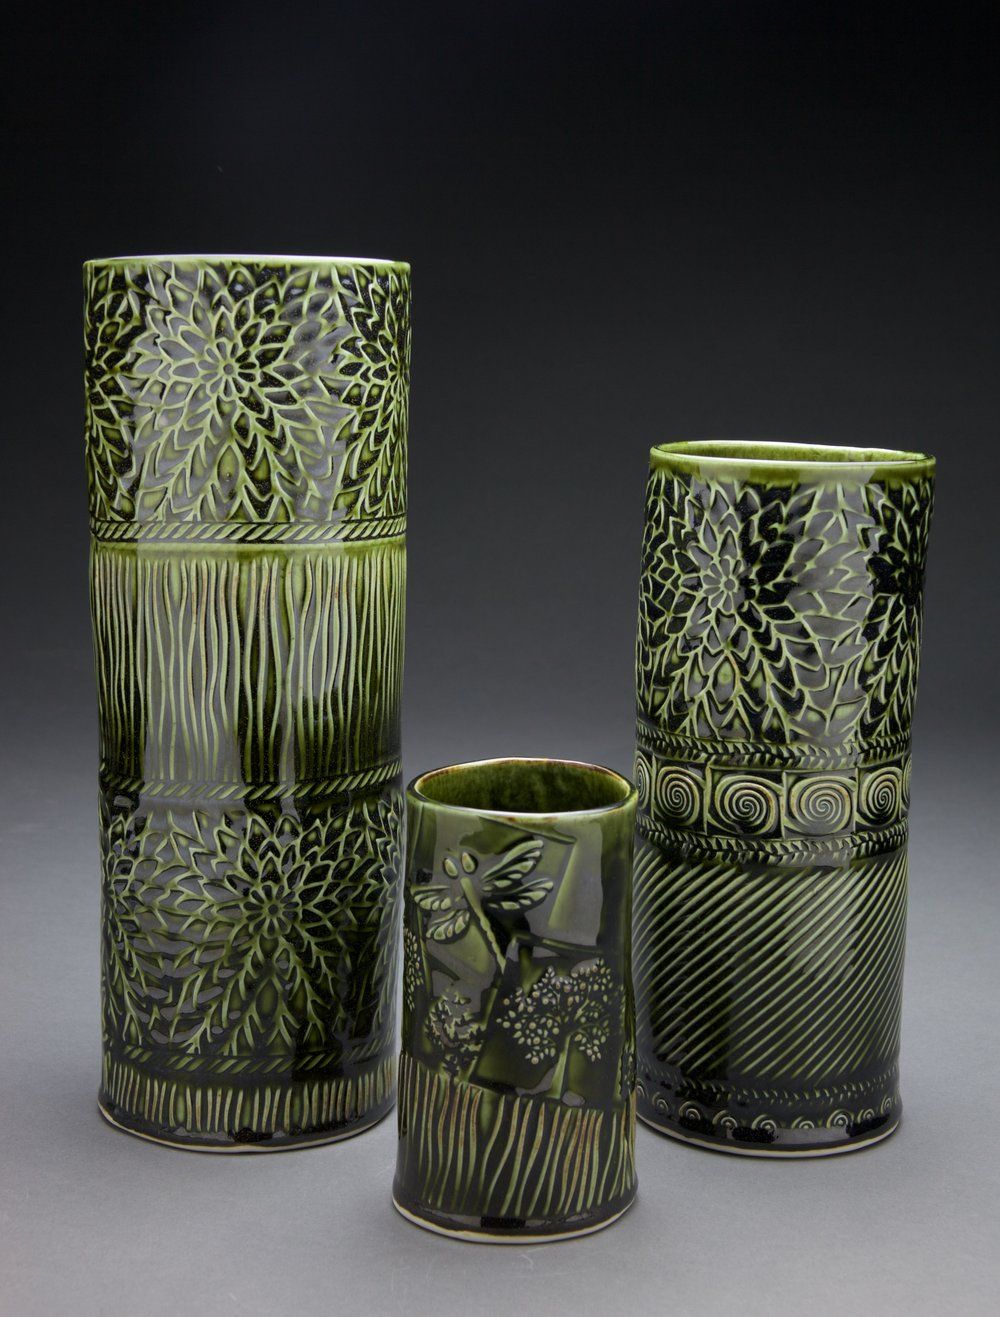 5x5x12 in.  3x3x6 in.  5x5x9 in. vases Forest Green celadon